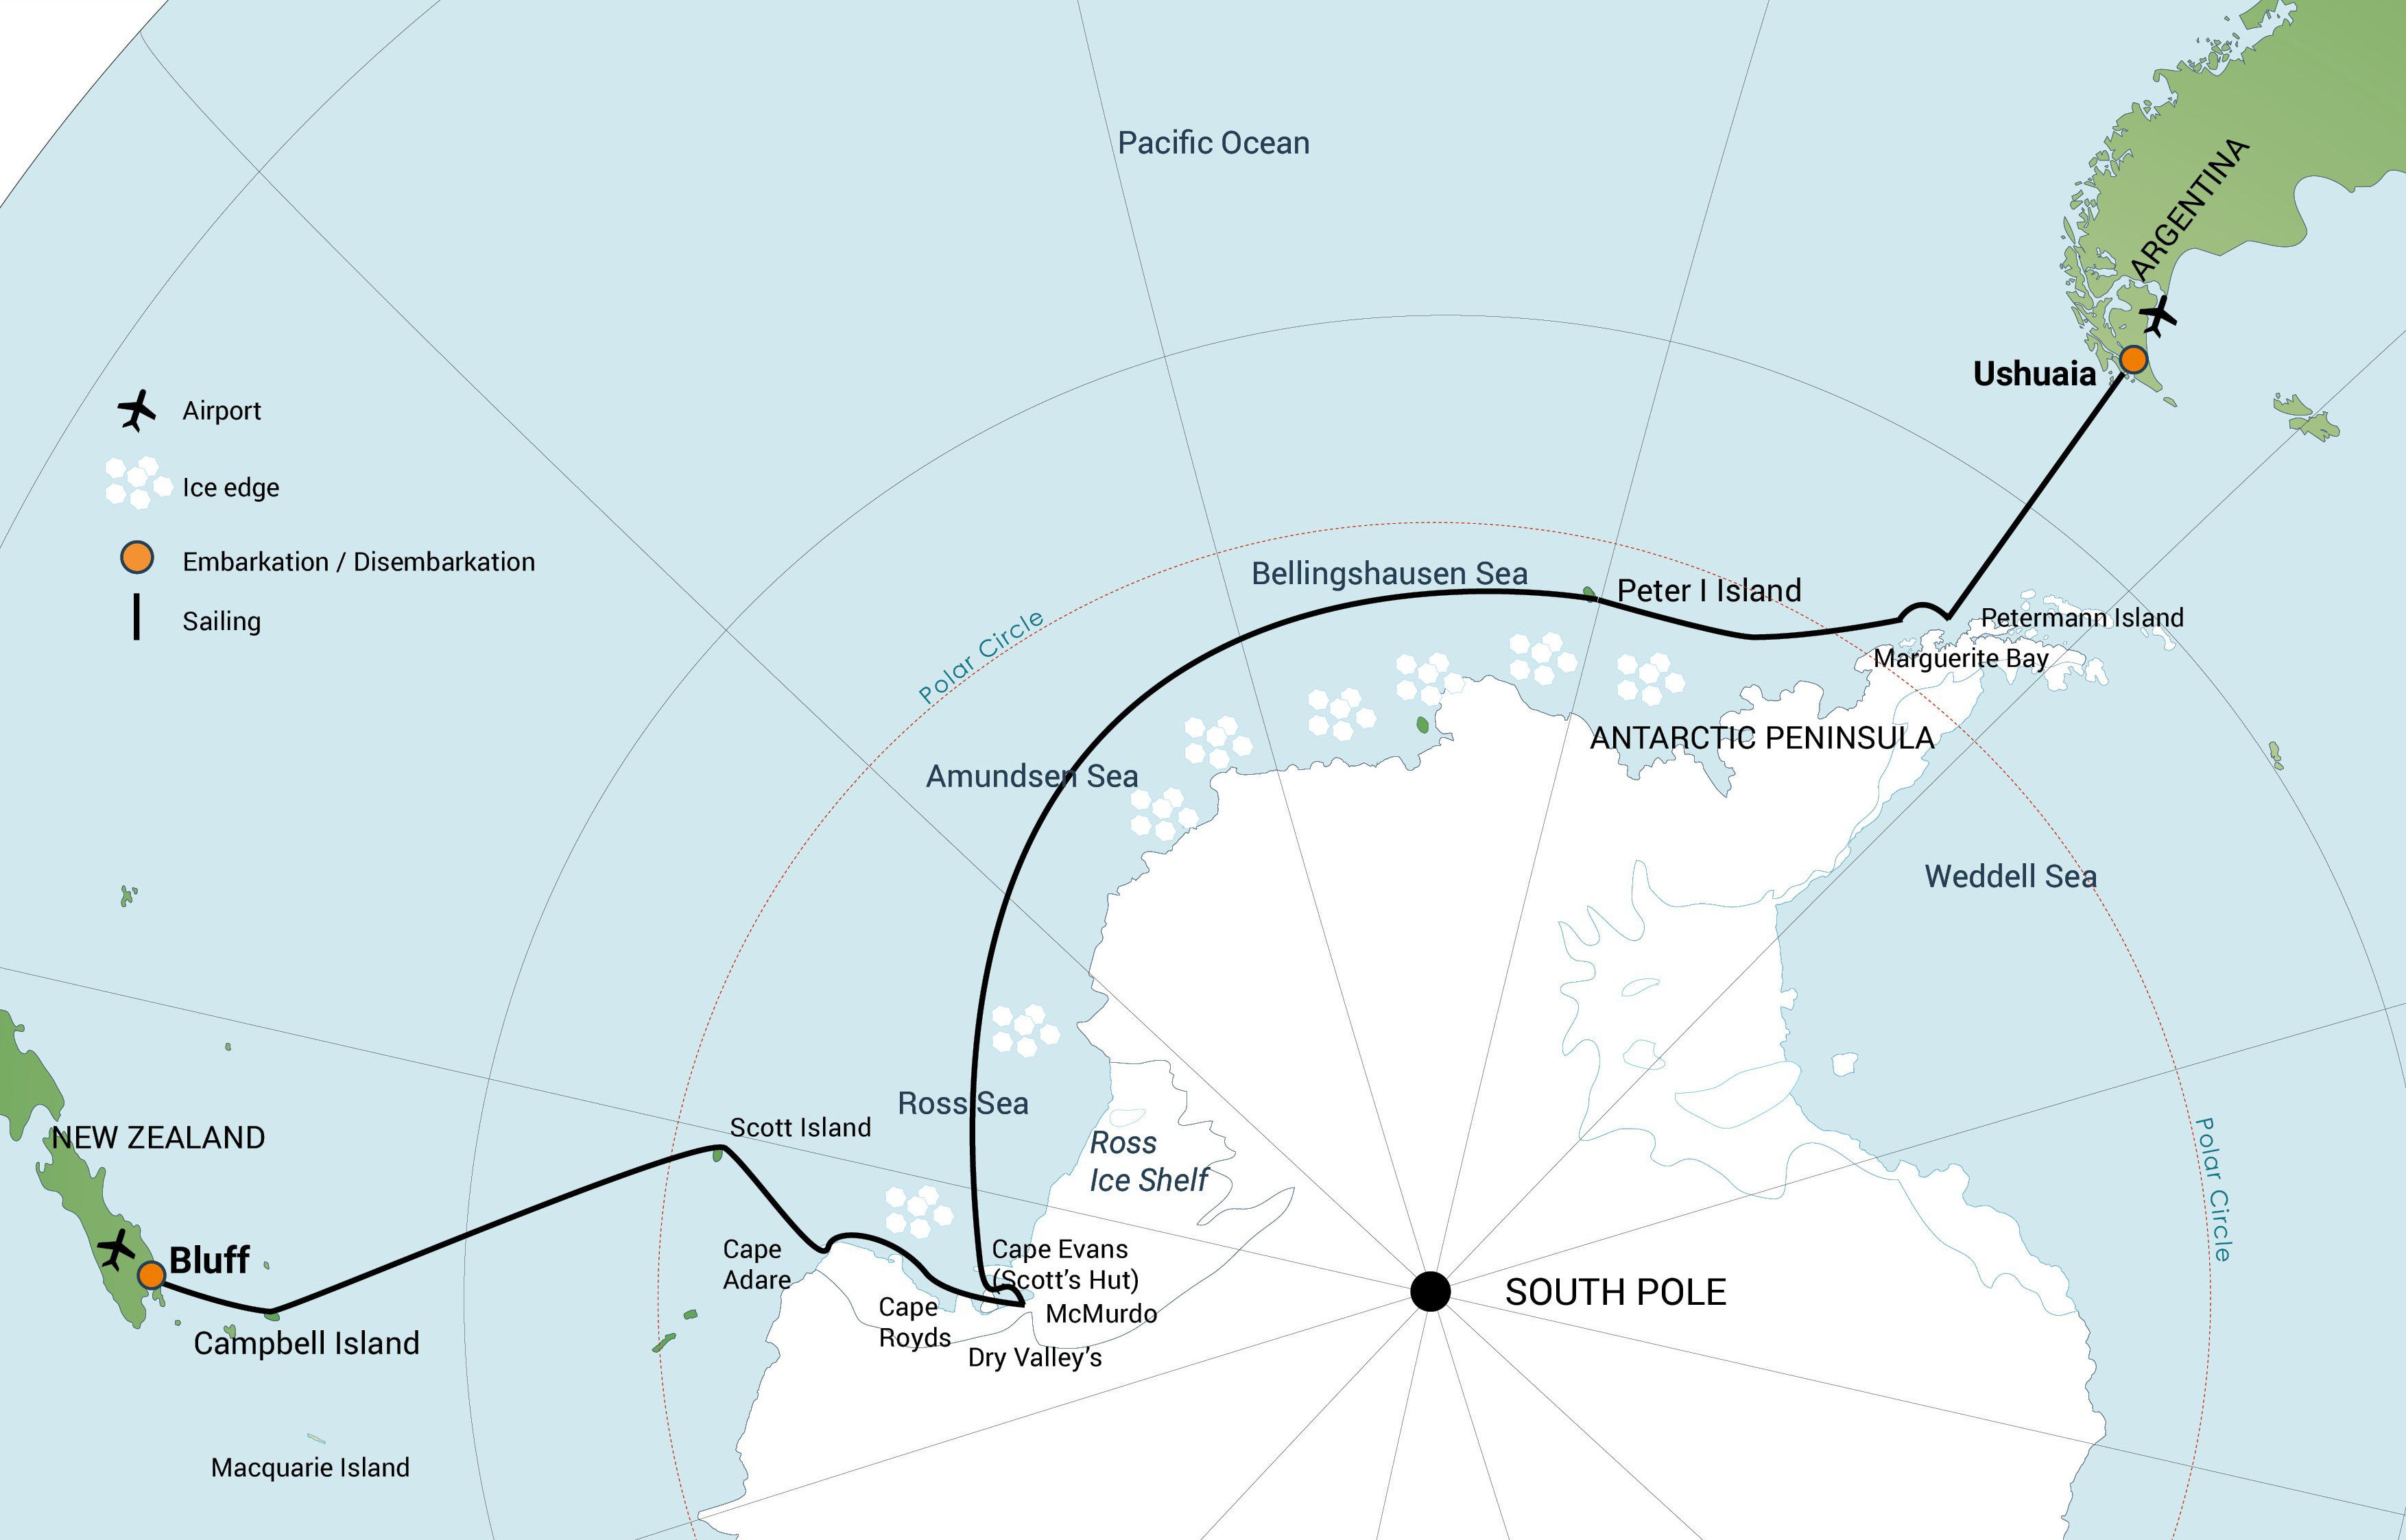 Map for Ross Sea Incl. Helicopters